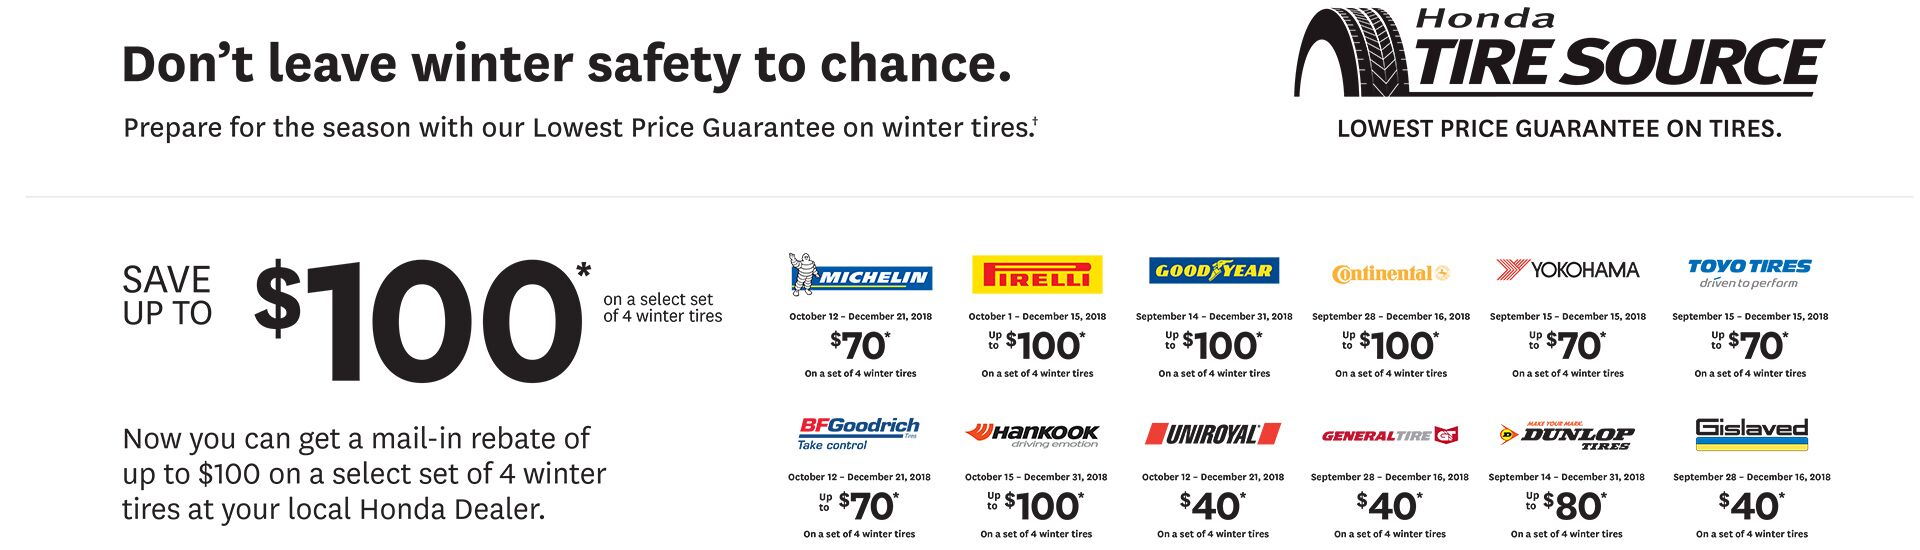 Tire Promotion